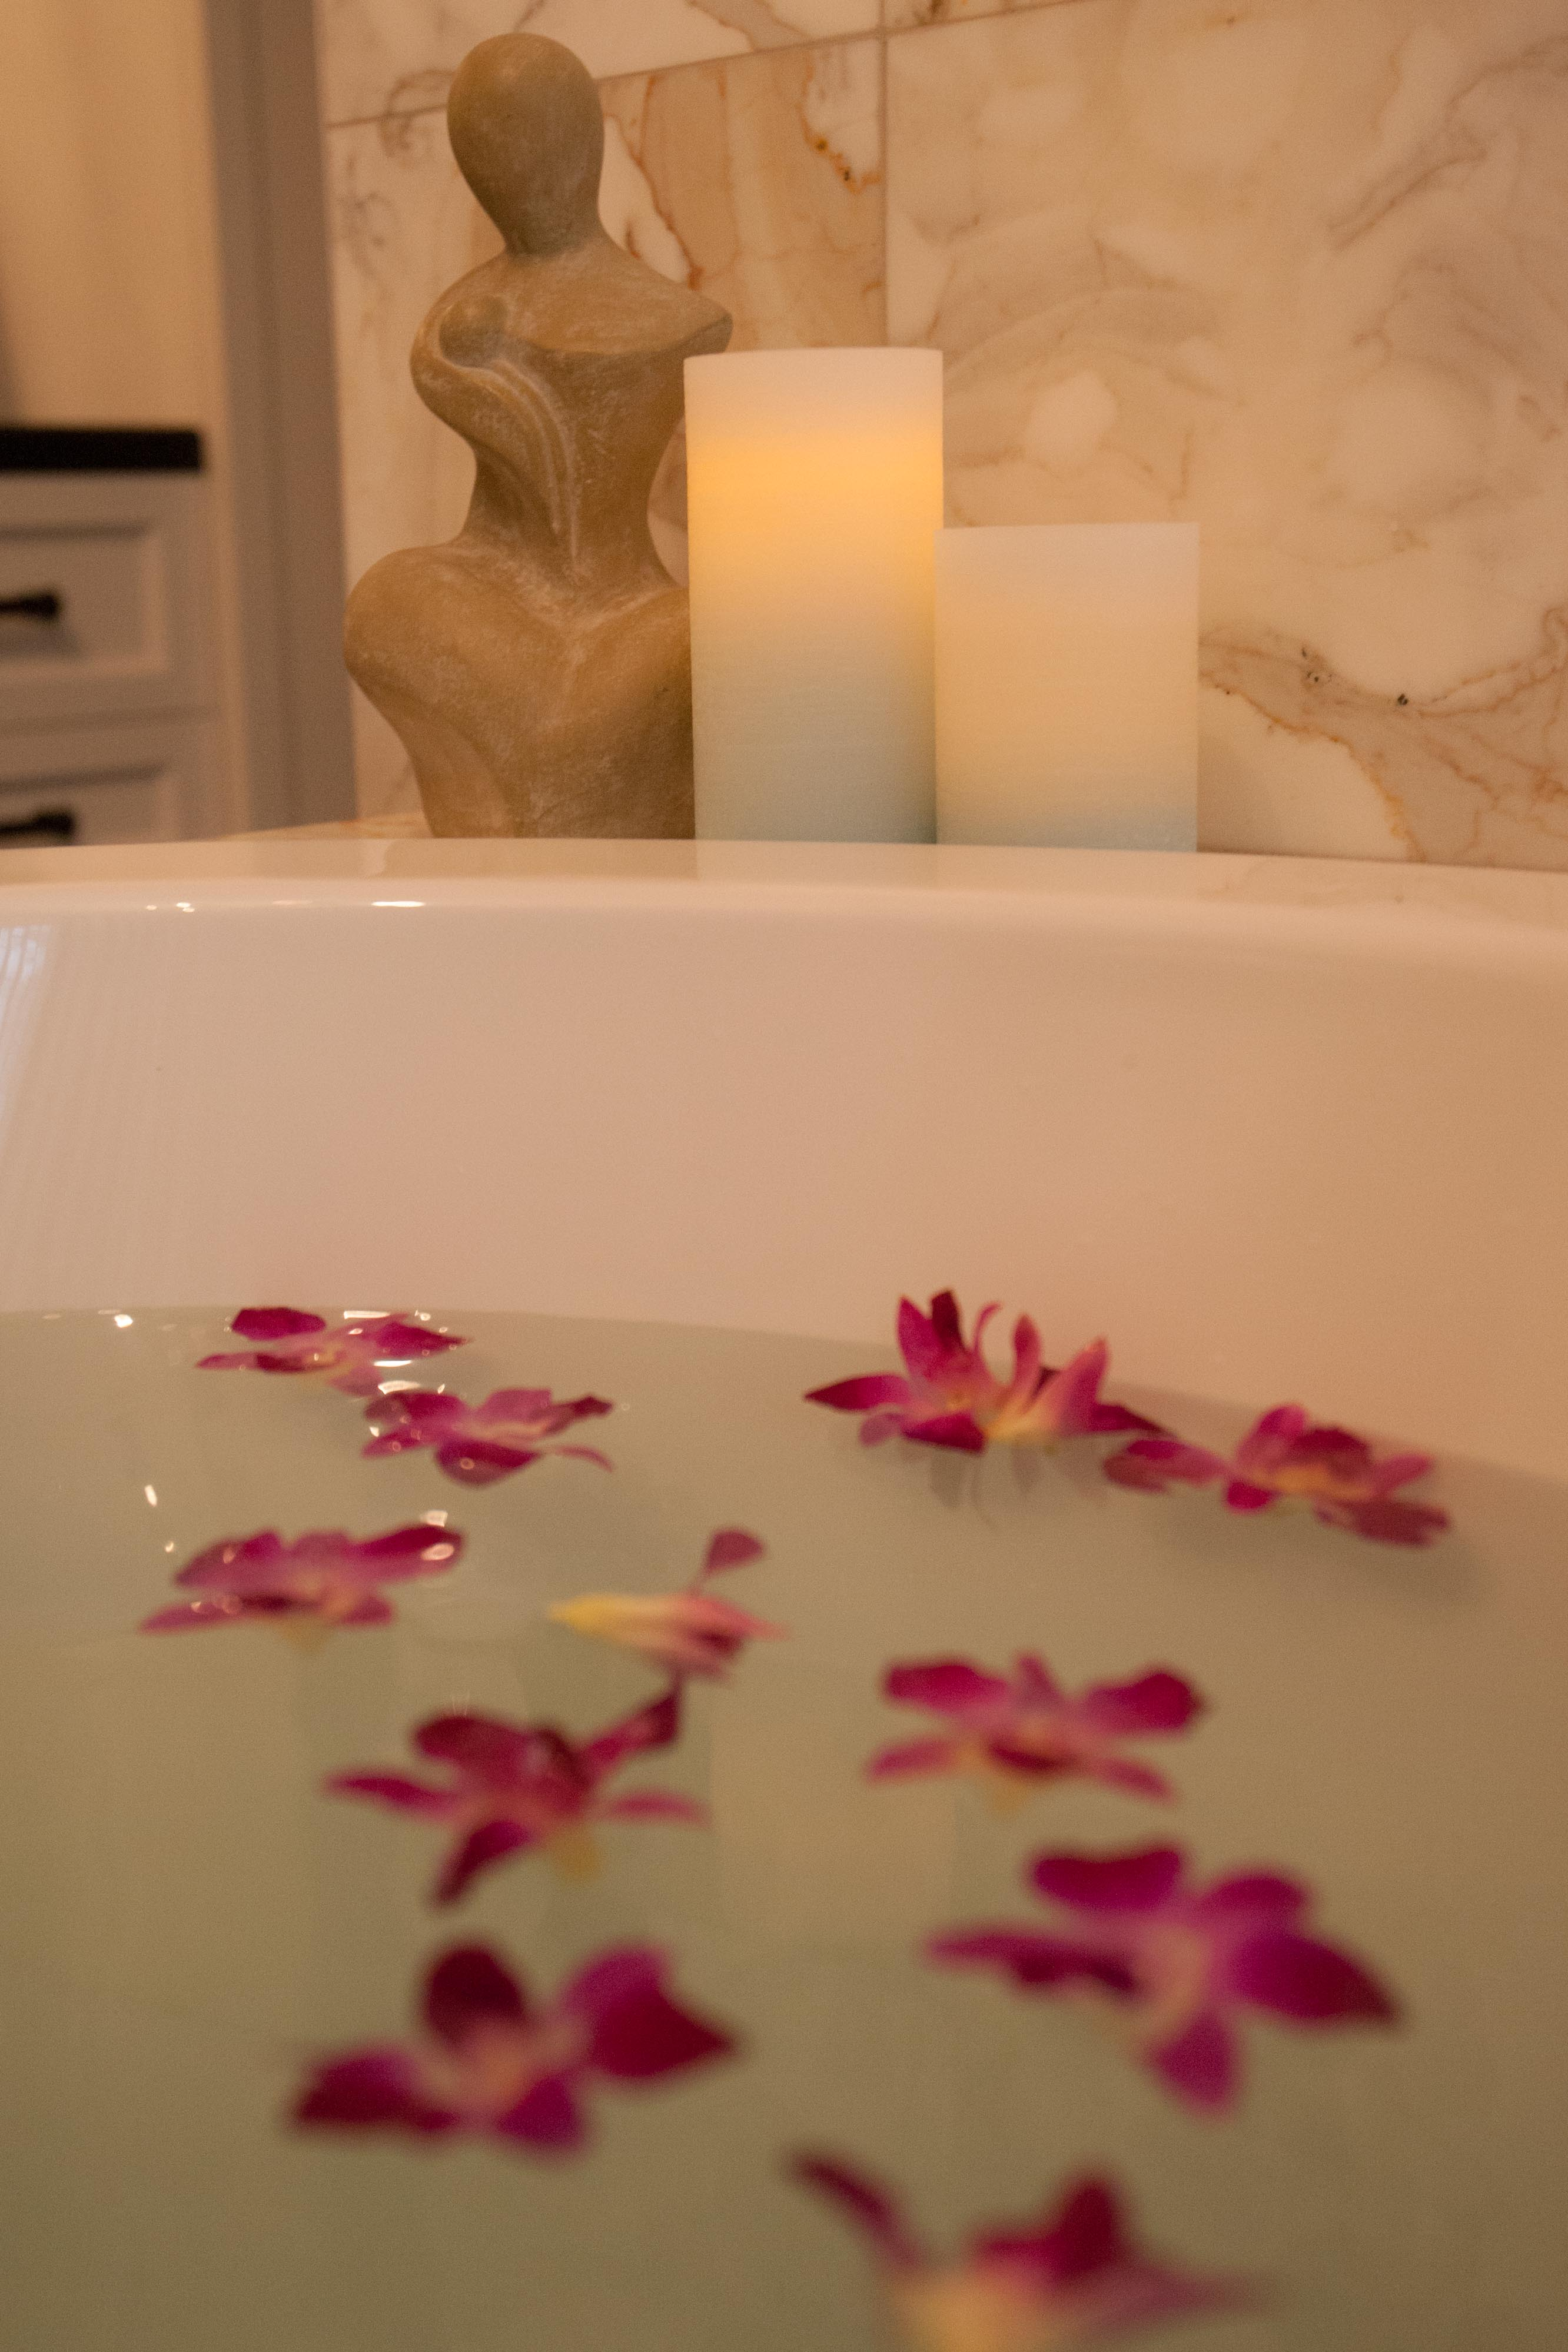 Tranquility bath water